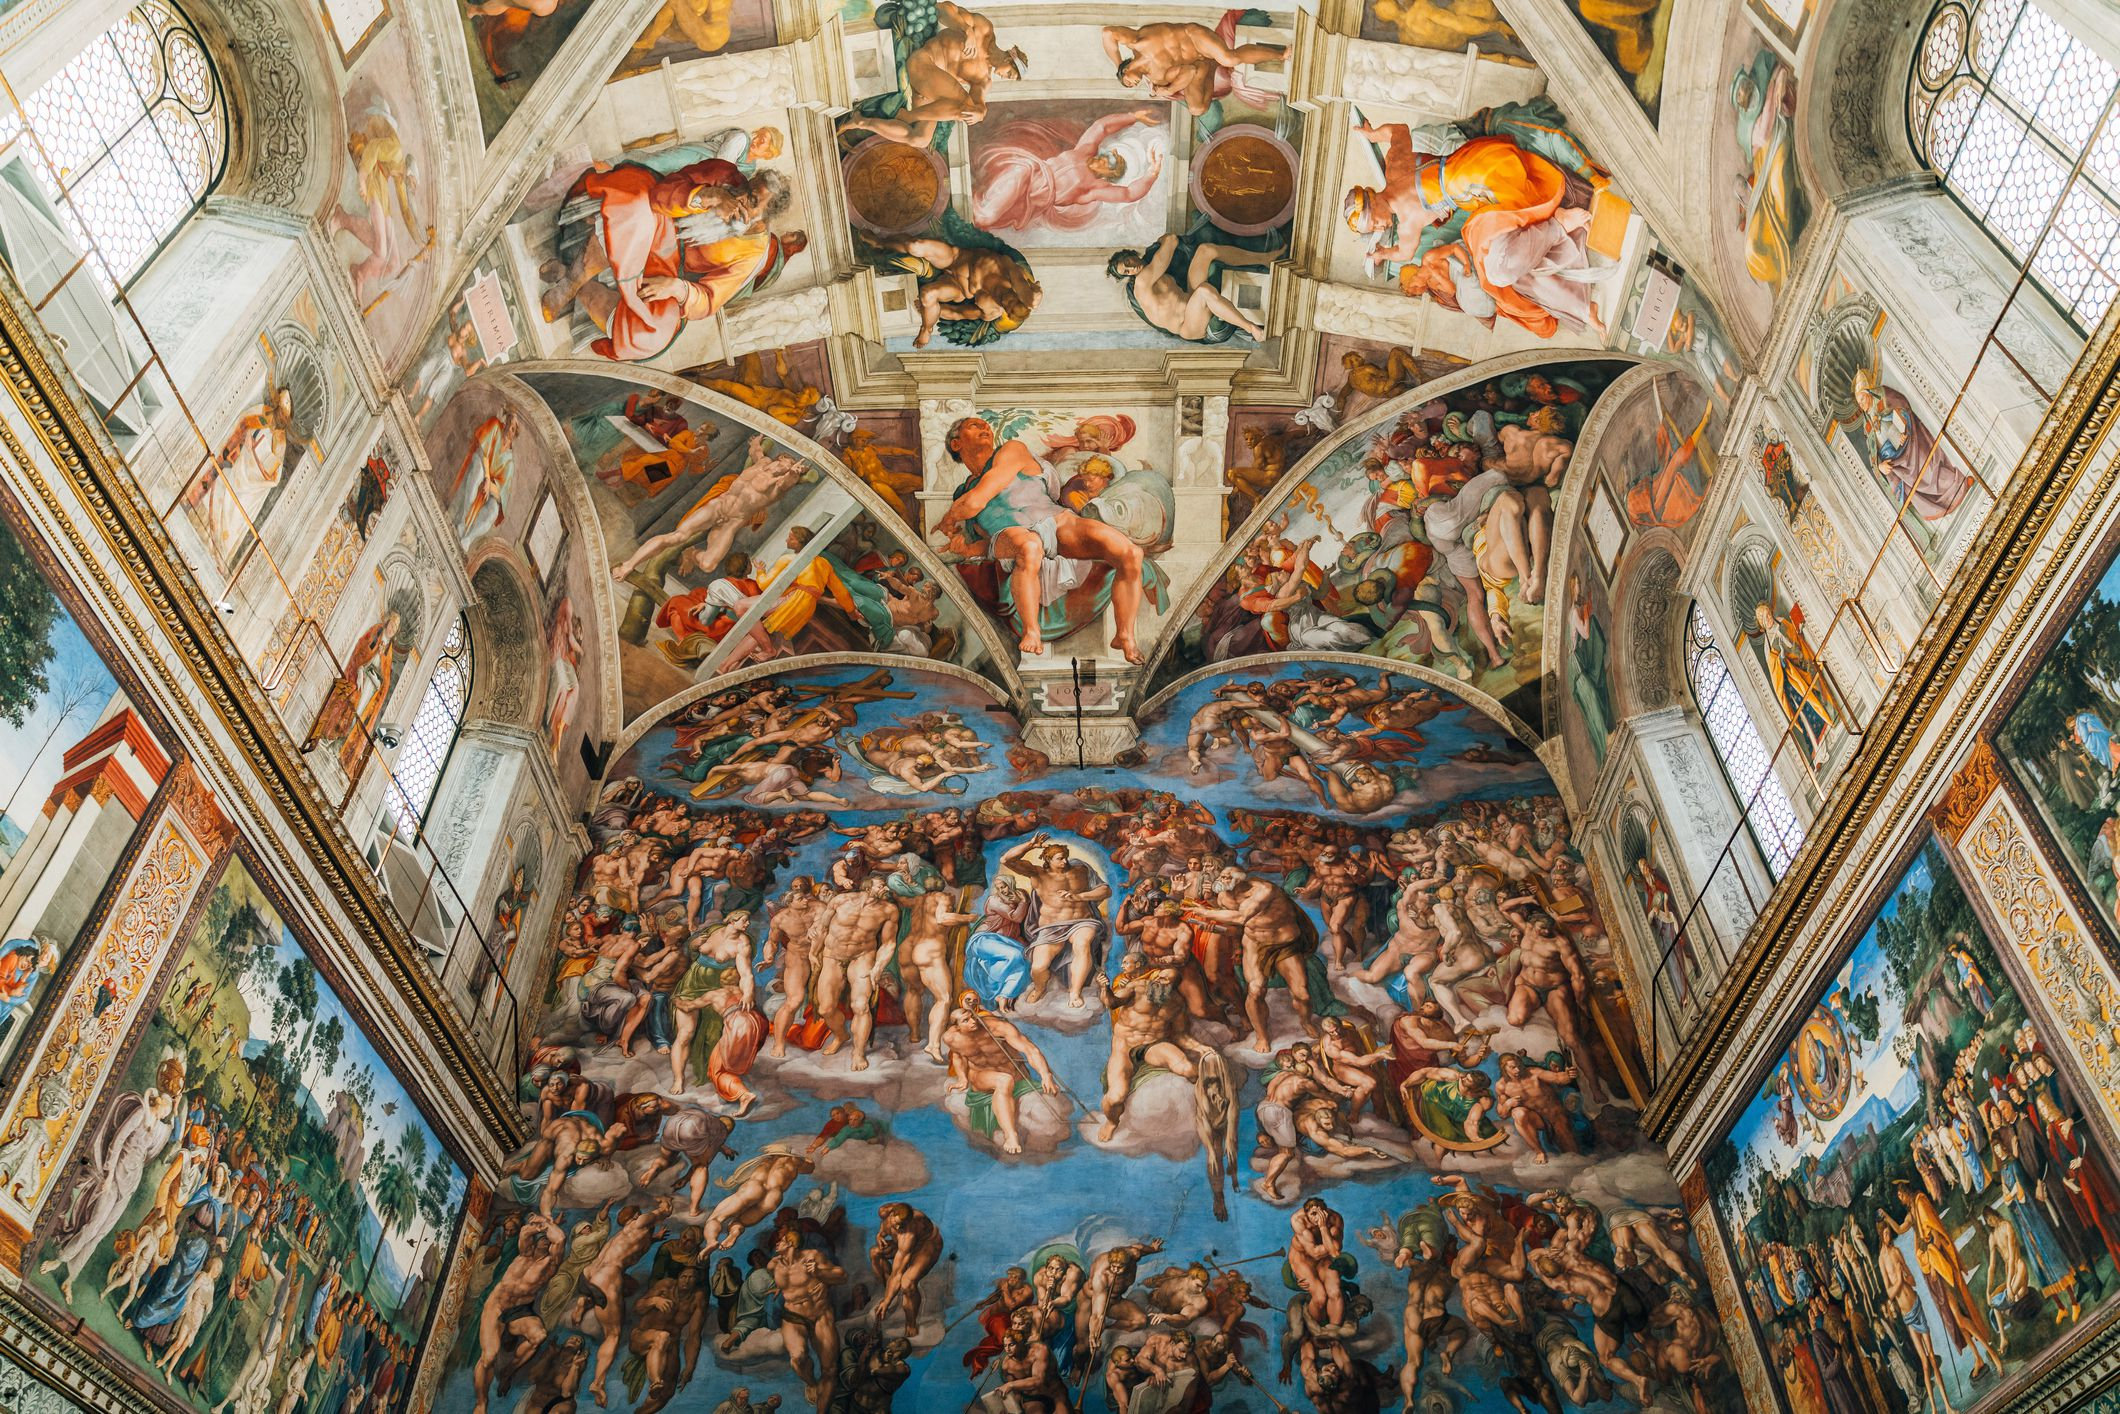 Where to See Michelangelo's Art in Rome